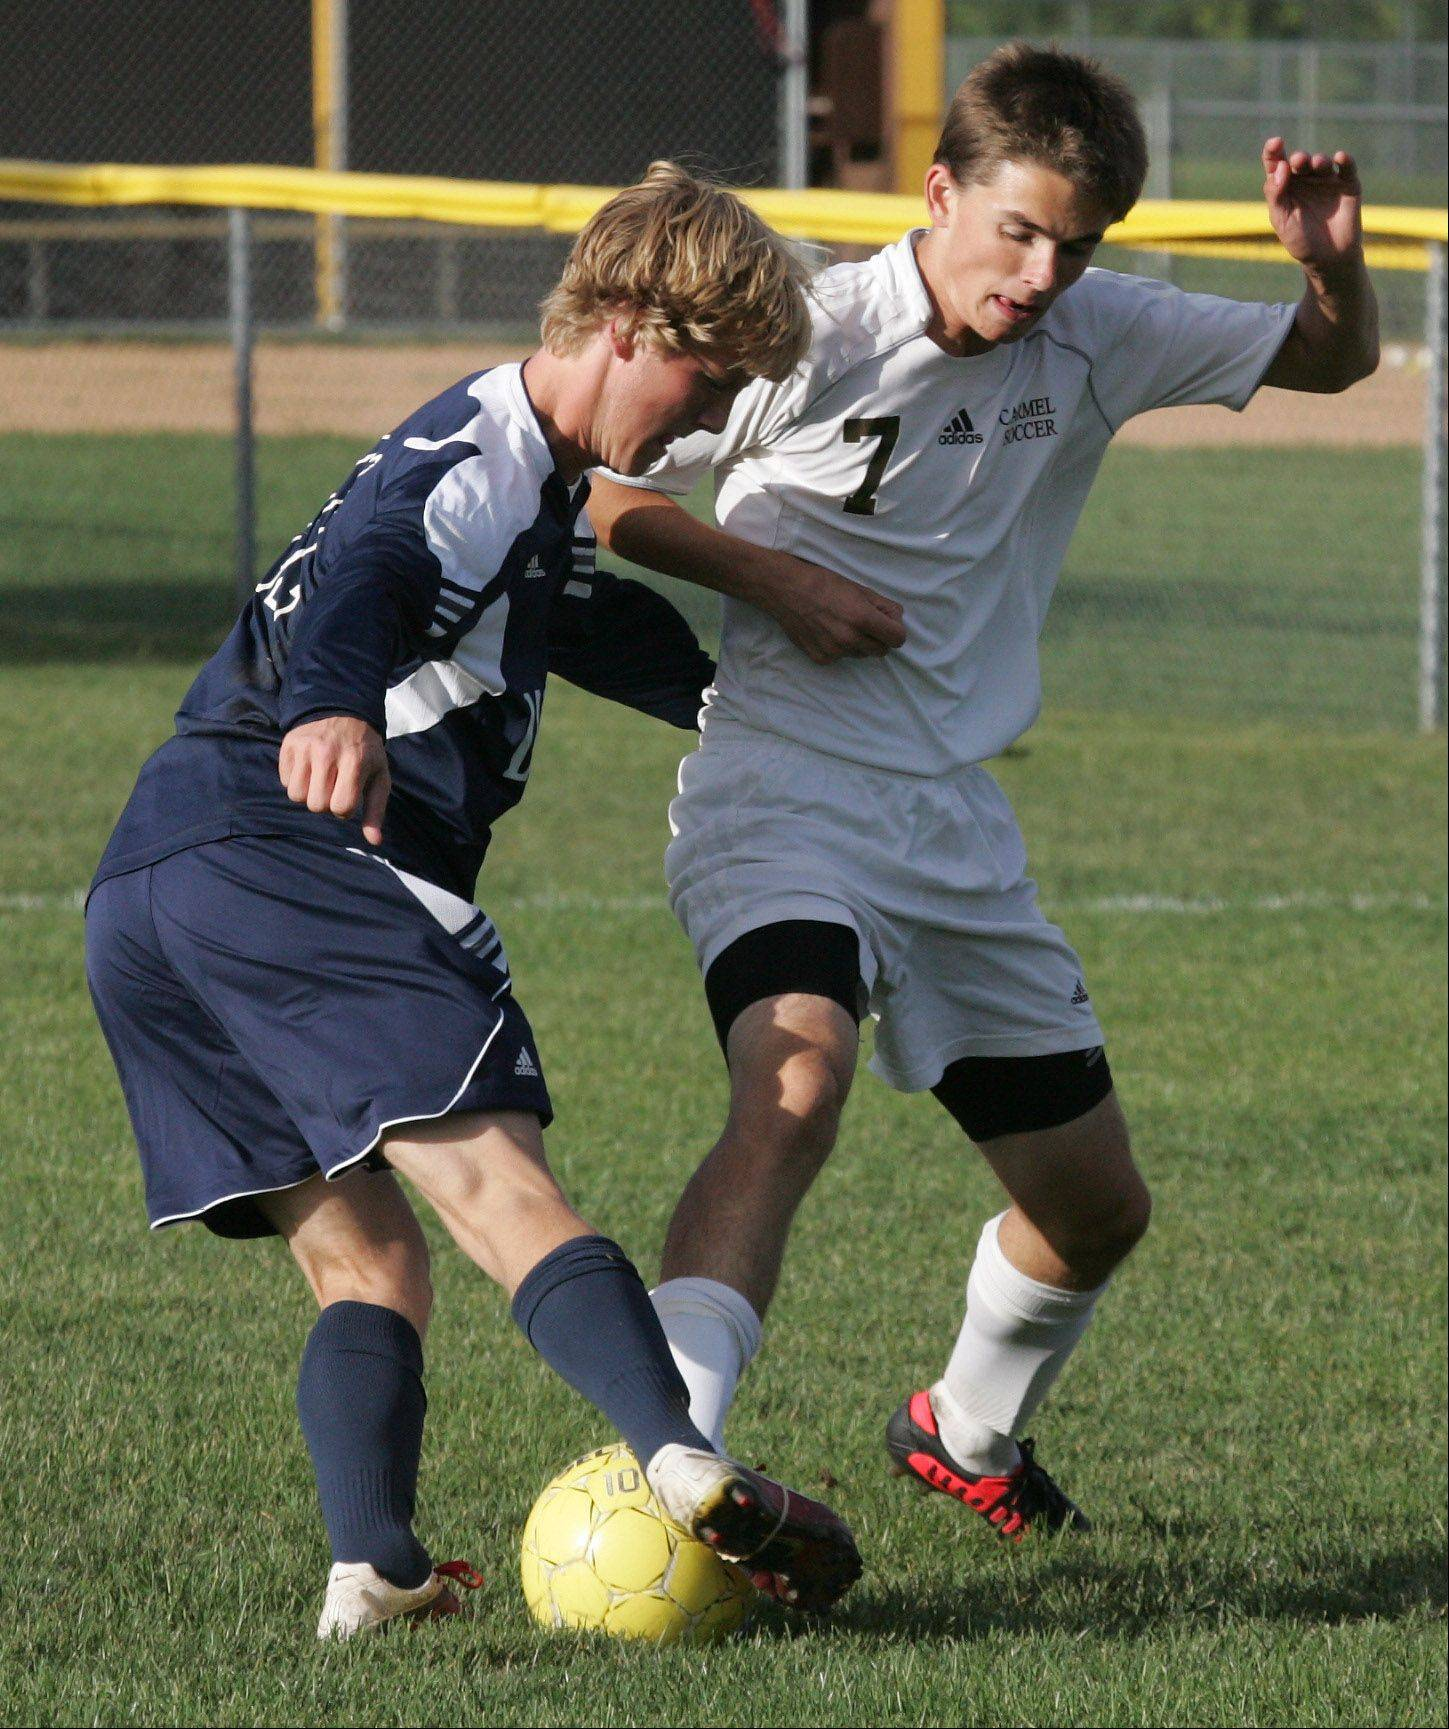 St. Viator midfielder Jackson Owens battles Carmel defender Tommy Paslaski on Tuesday in Mundelein.